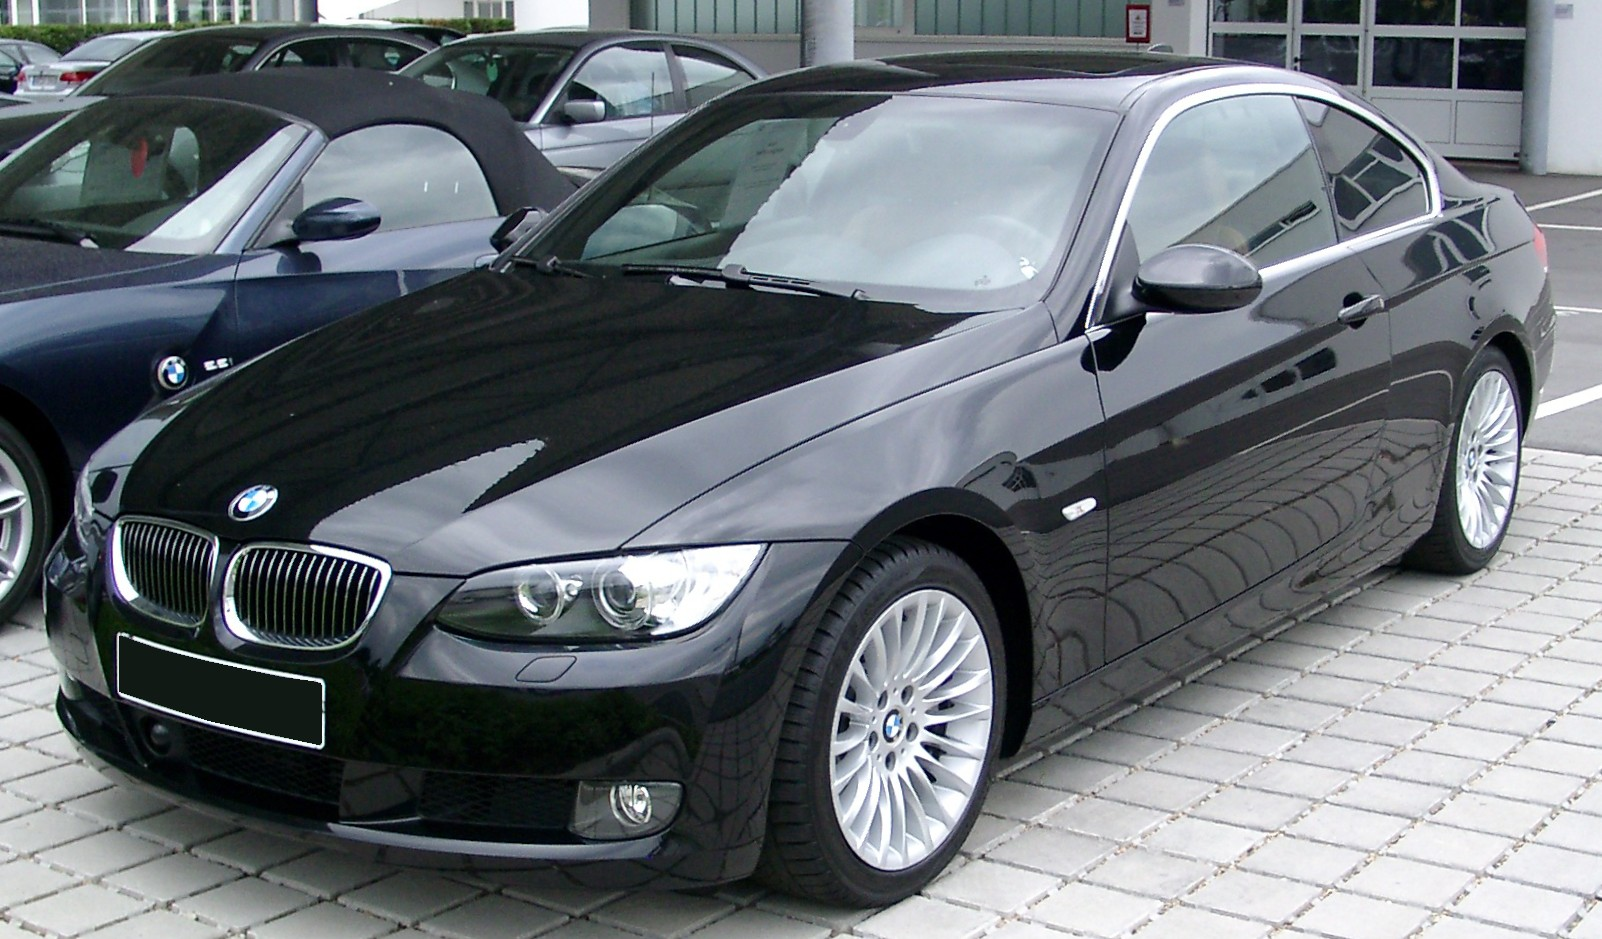 Bmw E90 Wiki >> Bmw 3 Series Bmw E90 Wiki Bmw Car Pictures All Types All Models